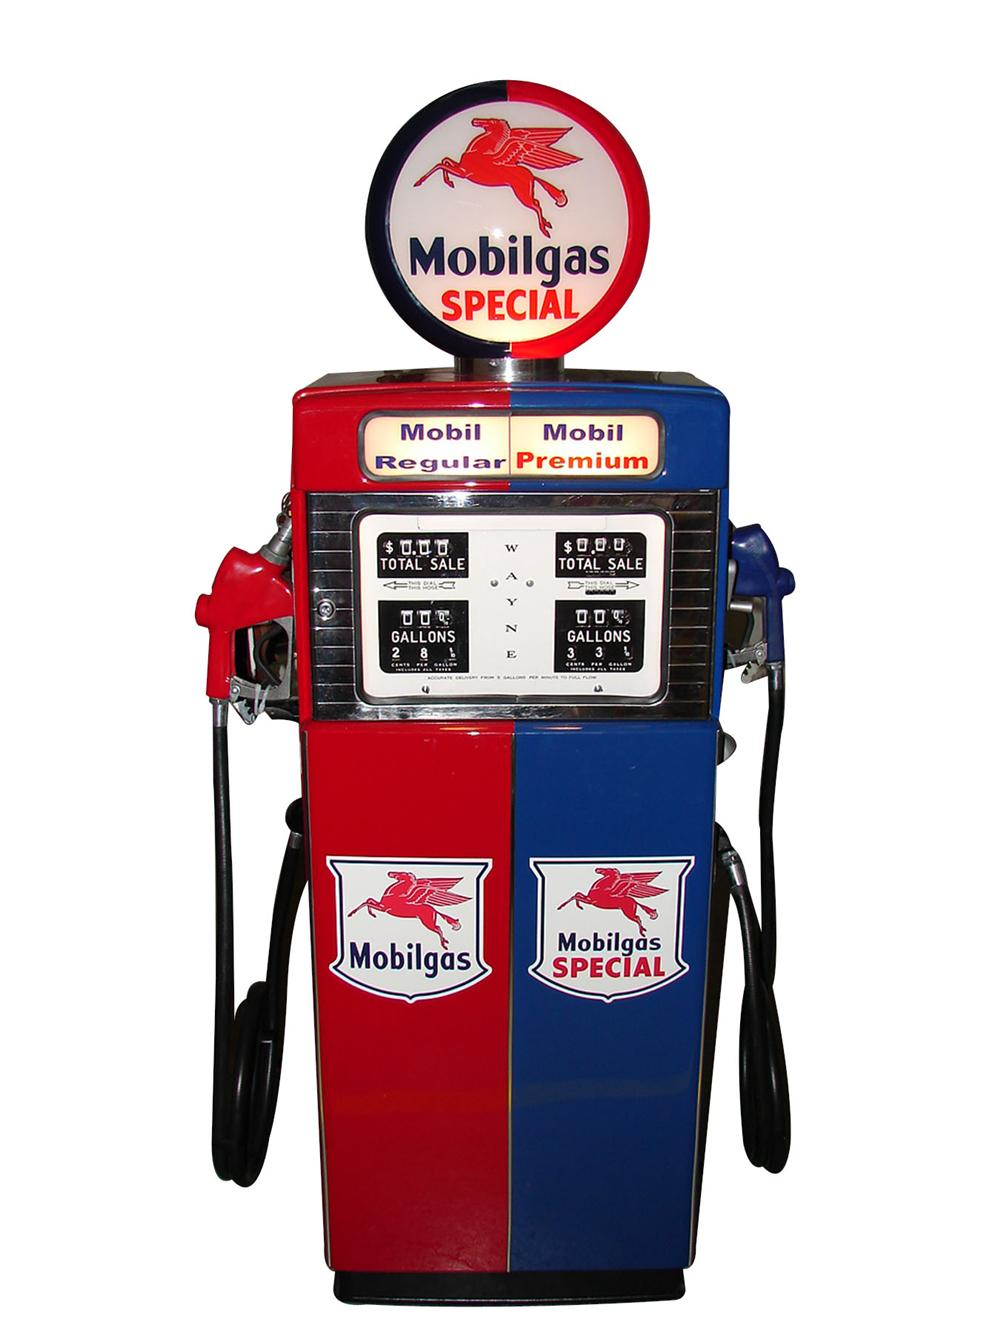 Phenomenal and rare late 1950s-60s Wayne 505 Mobilgas dual product dispensing pump. - Front 3/4 - 133469